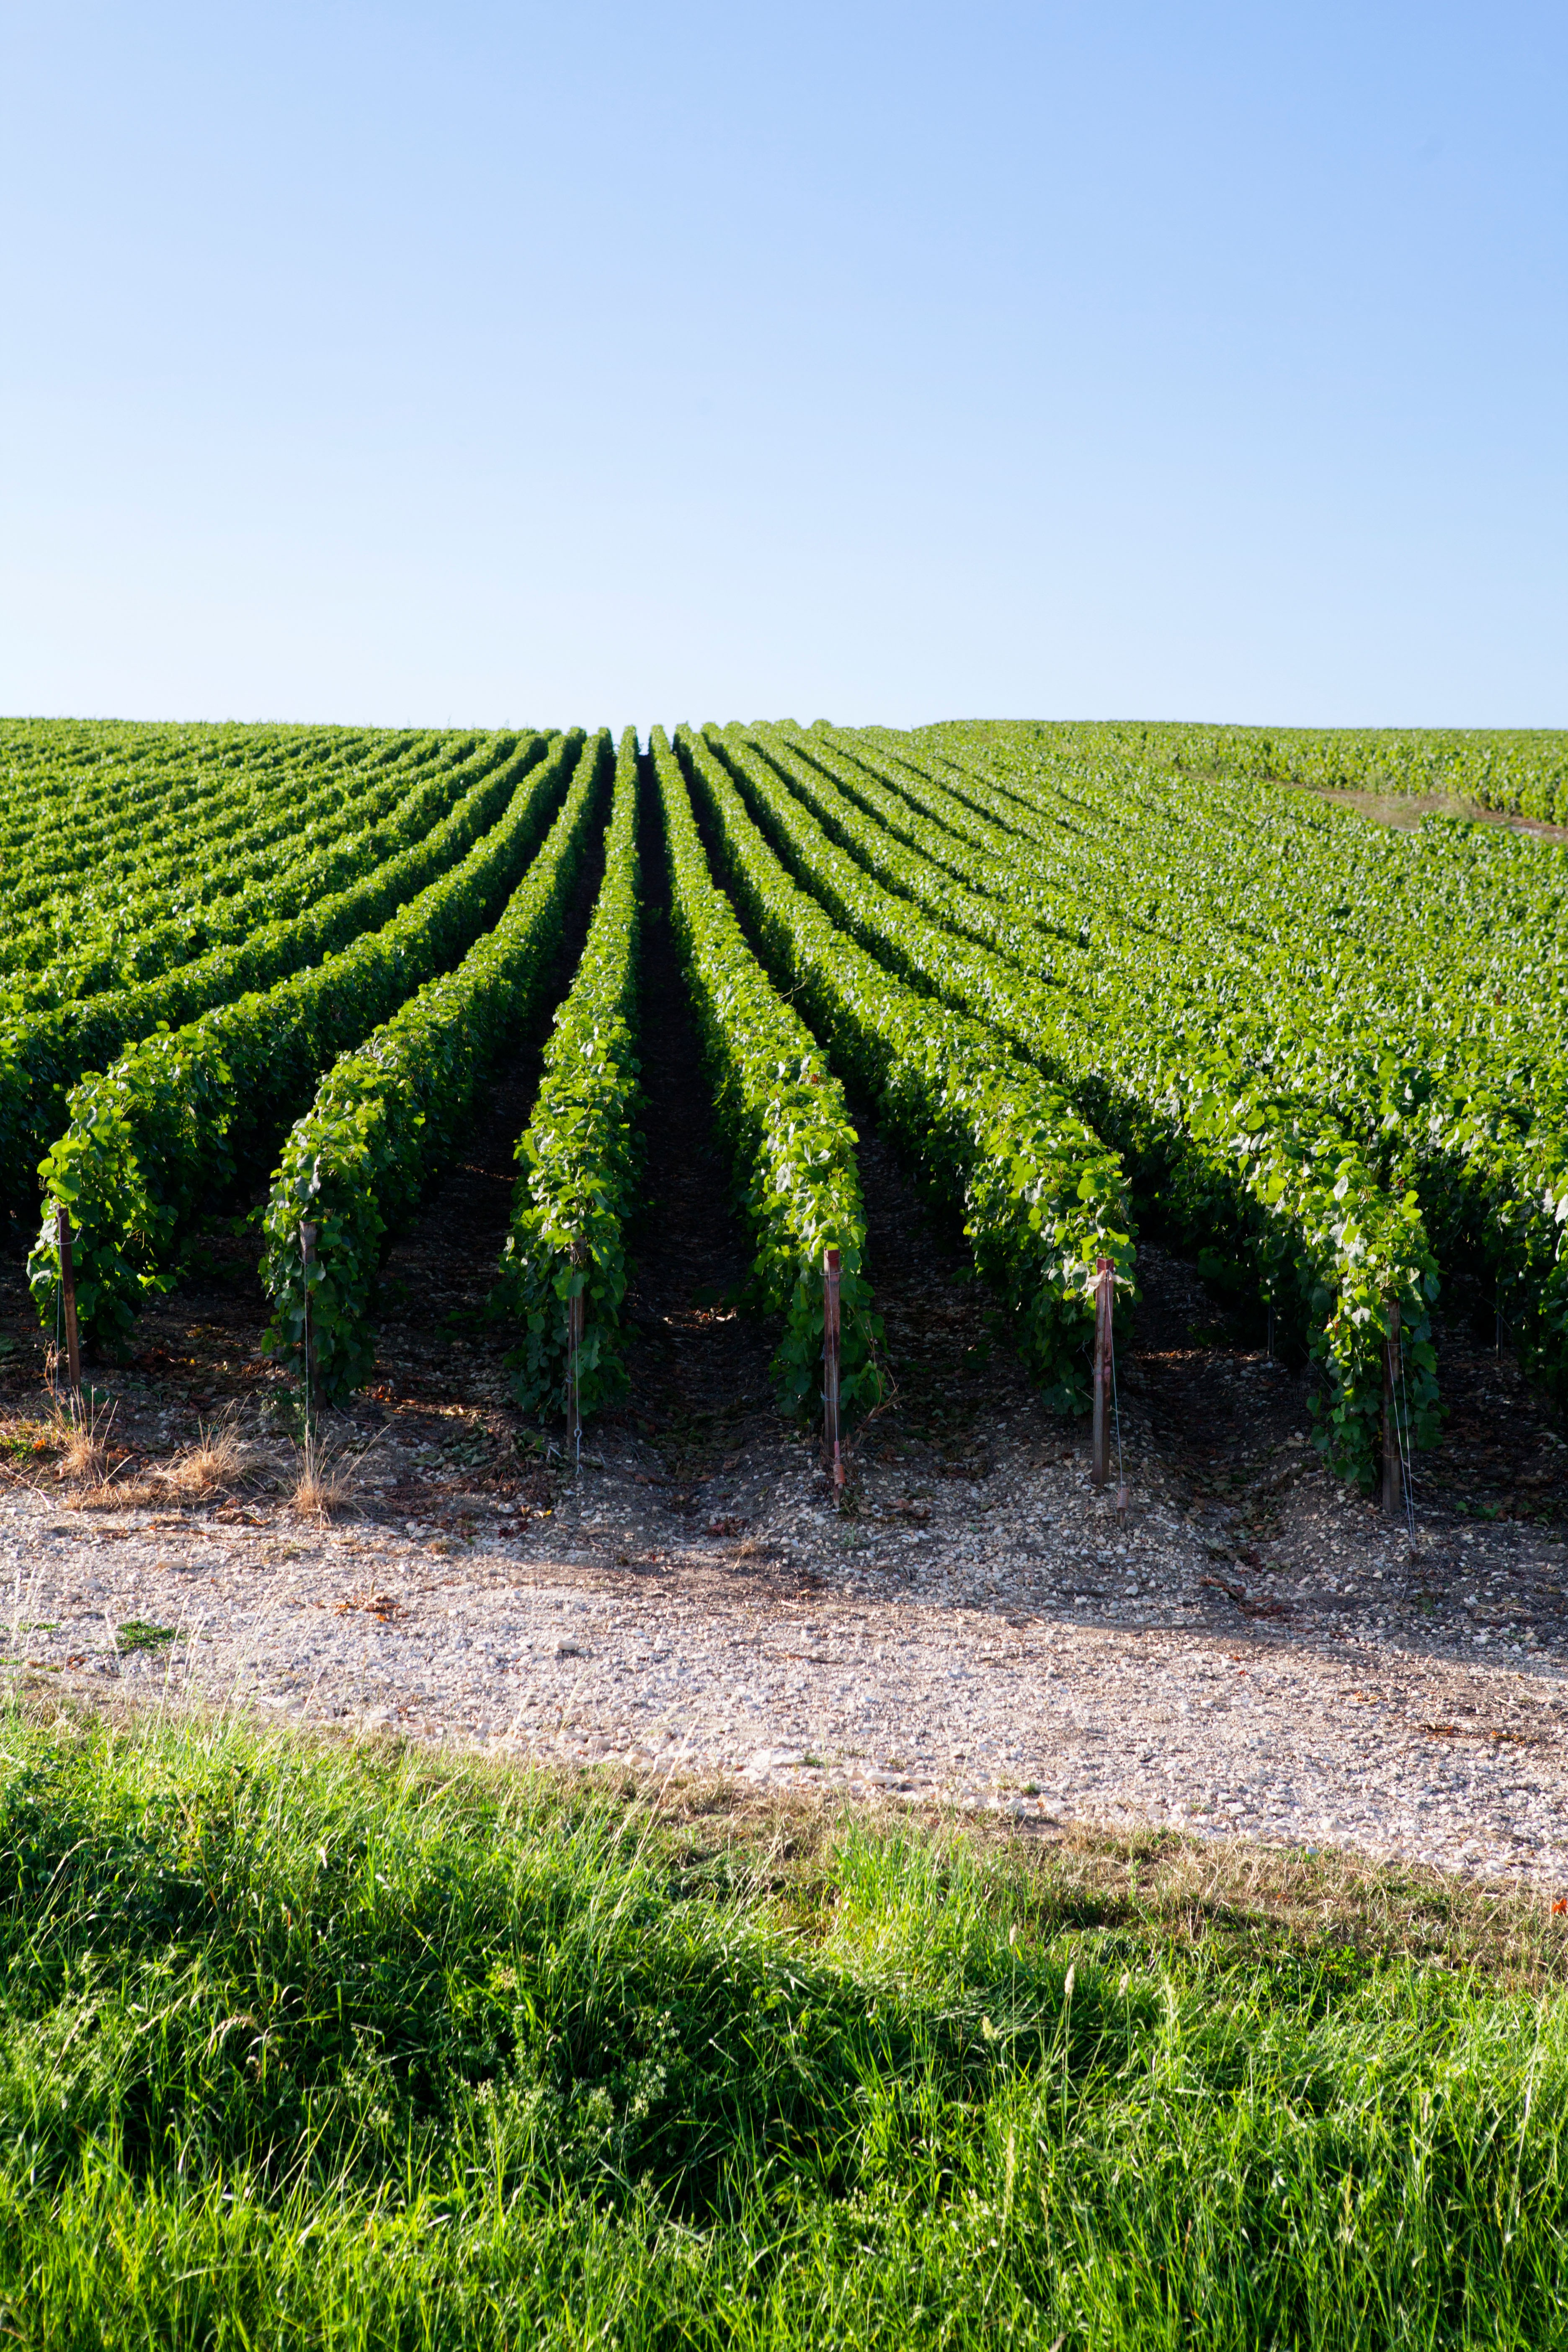 Champagne vineyards perspective, Champagne Ardenne, France